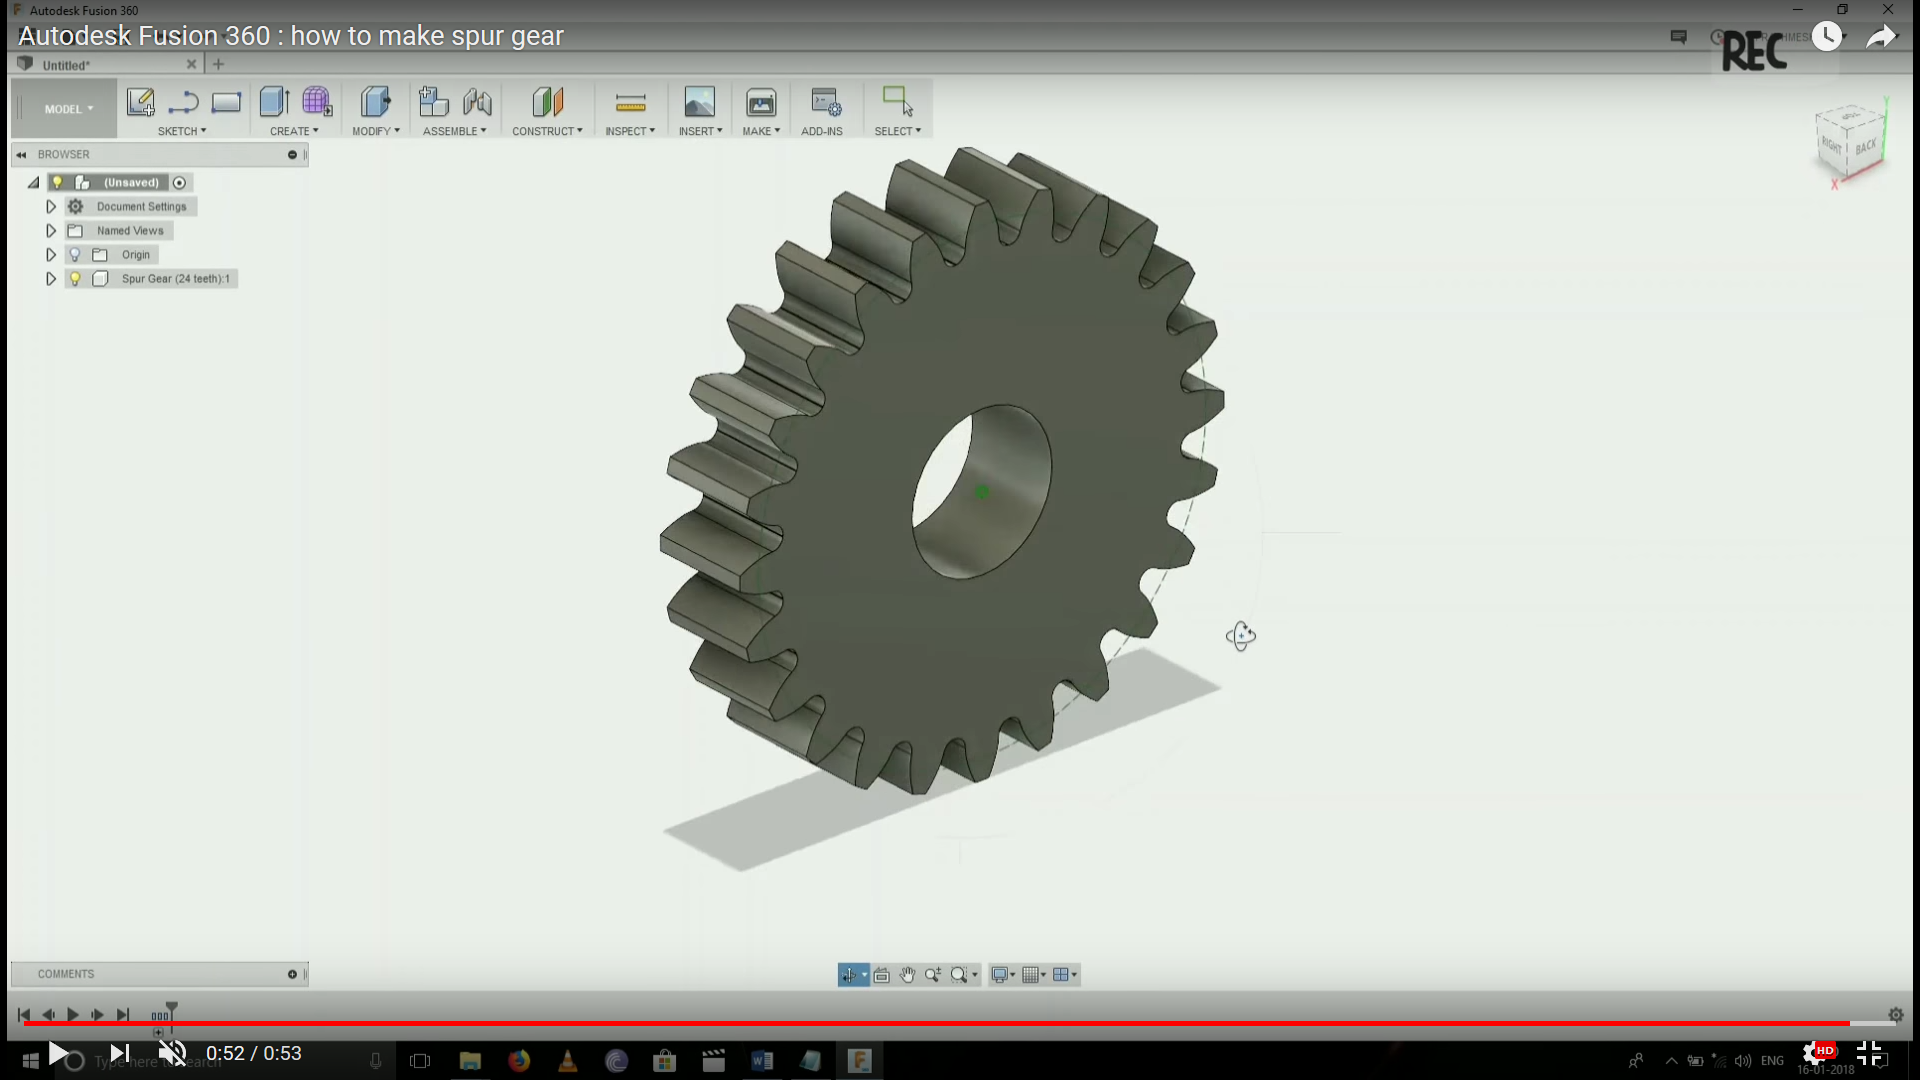 HOW TO MAKE GEAR IN FUSION 360 WITH GEAR CALCULATION